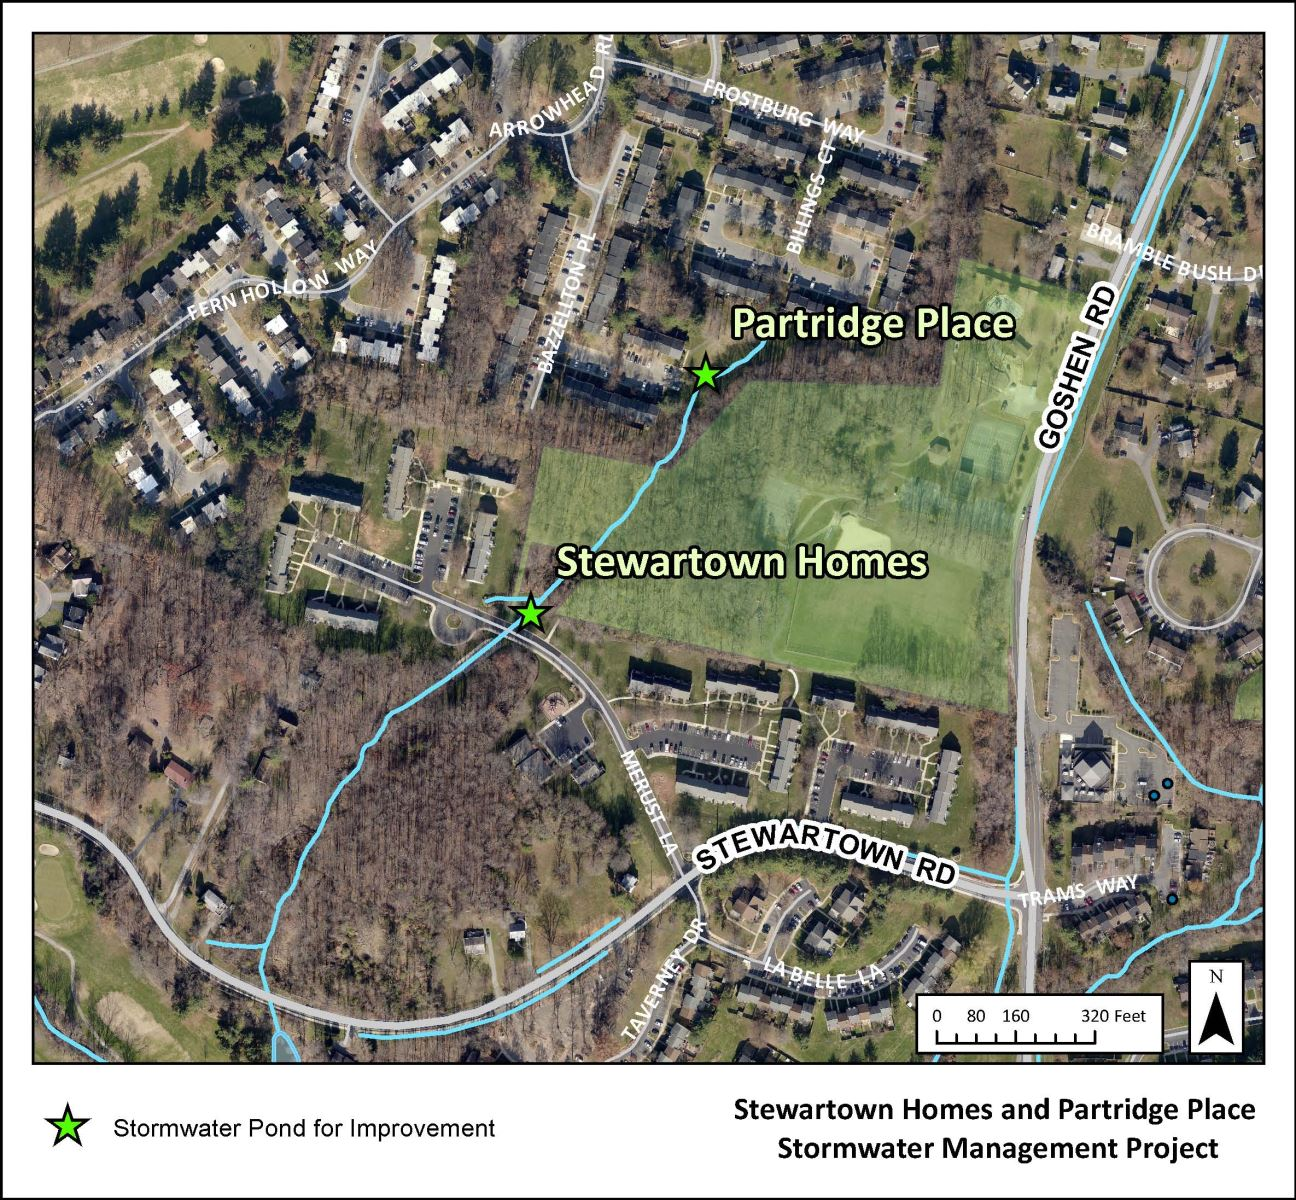 Image of Stewartown Homes and Patridge Place